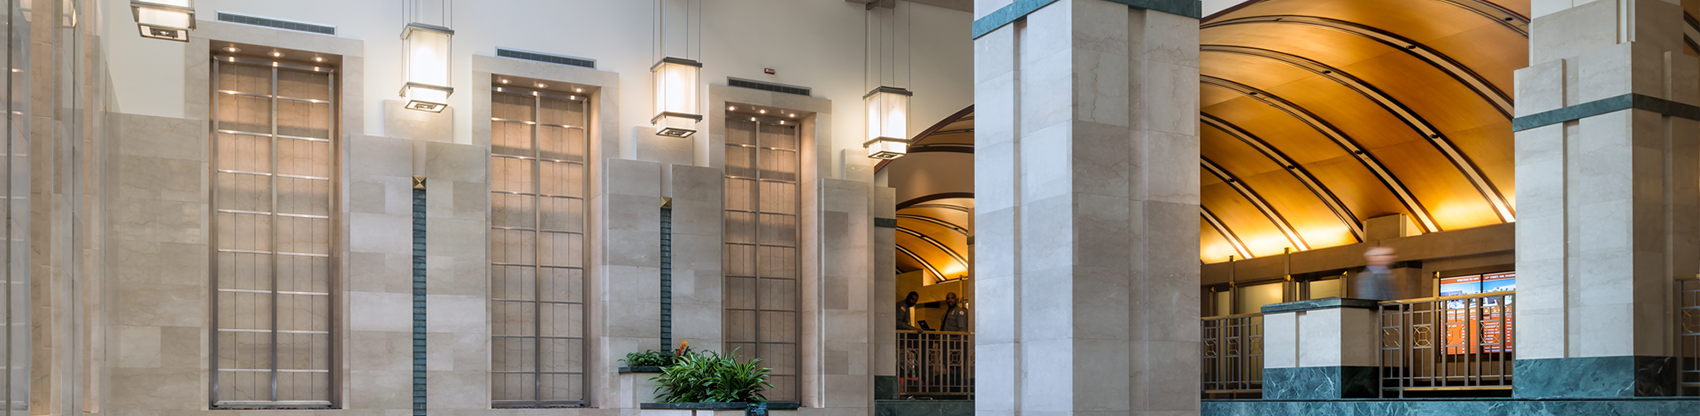 Franklin Court's Main Lobby and Atrium